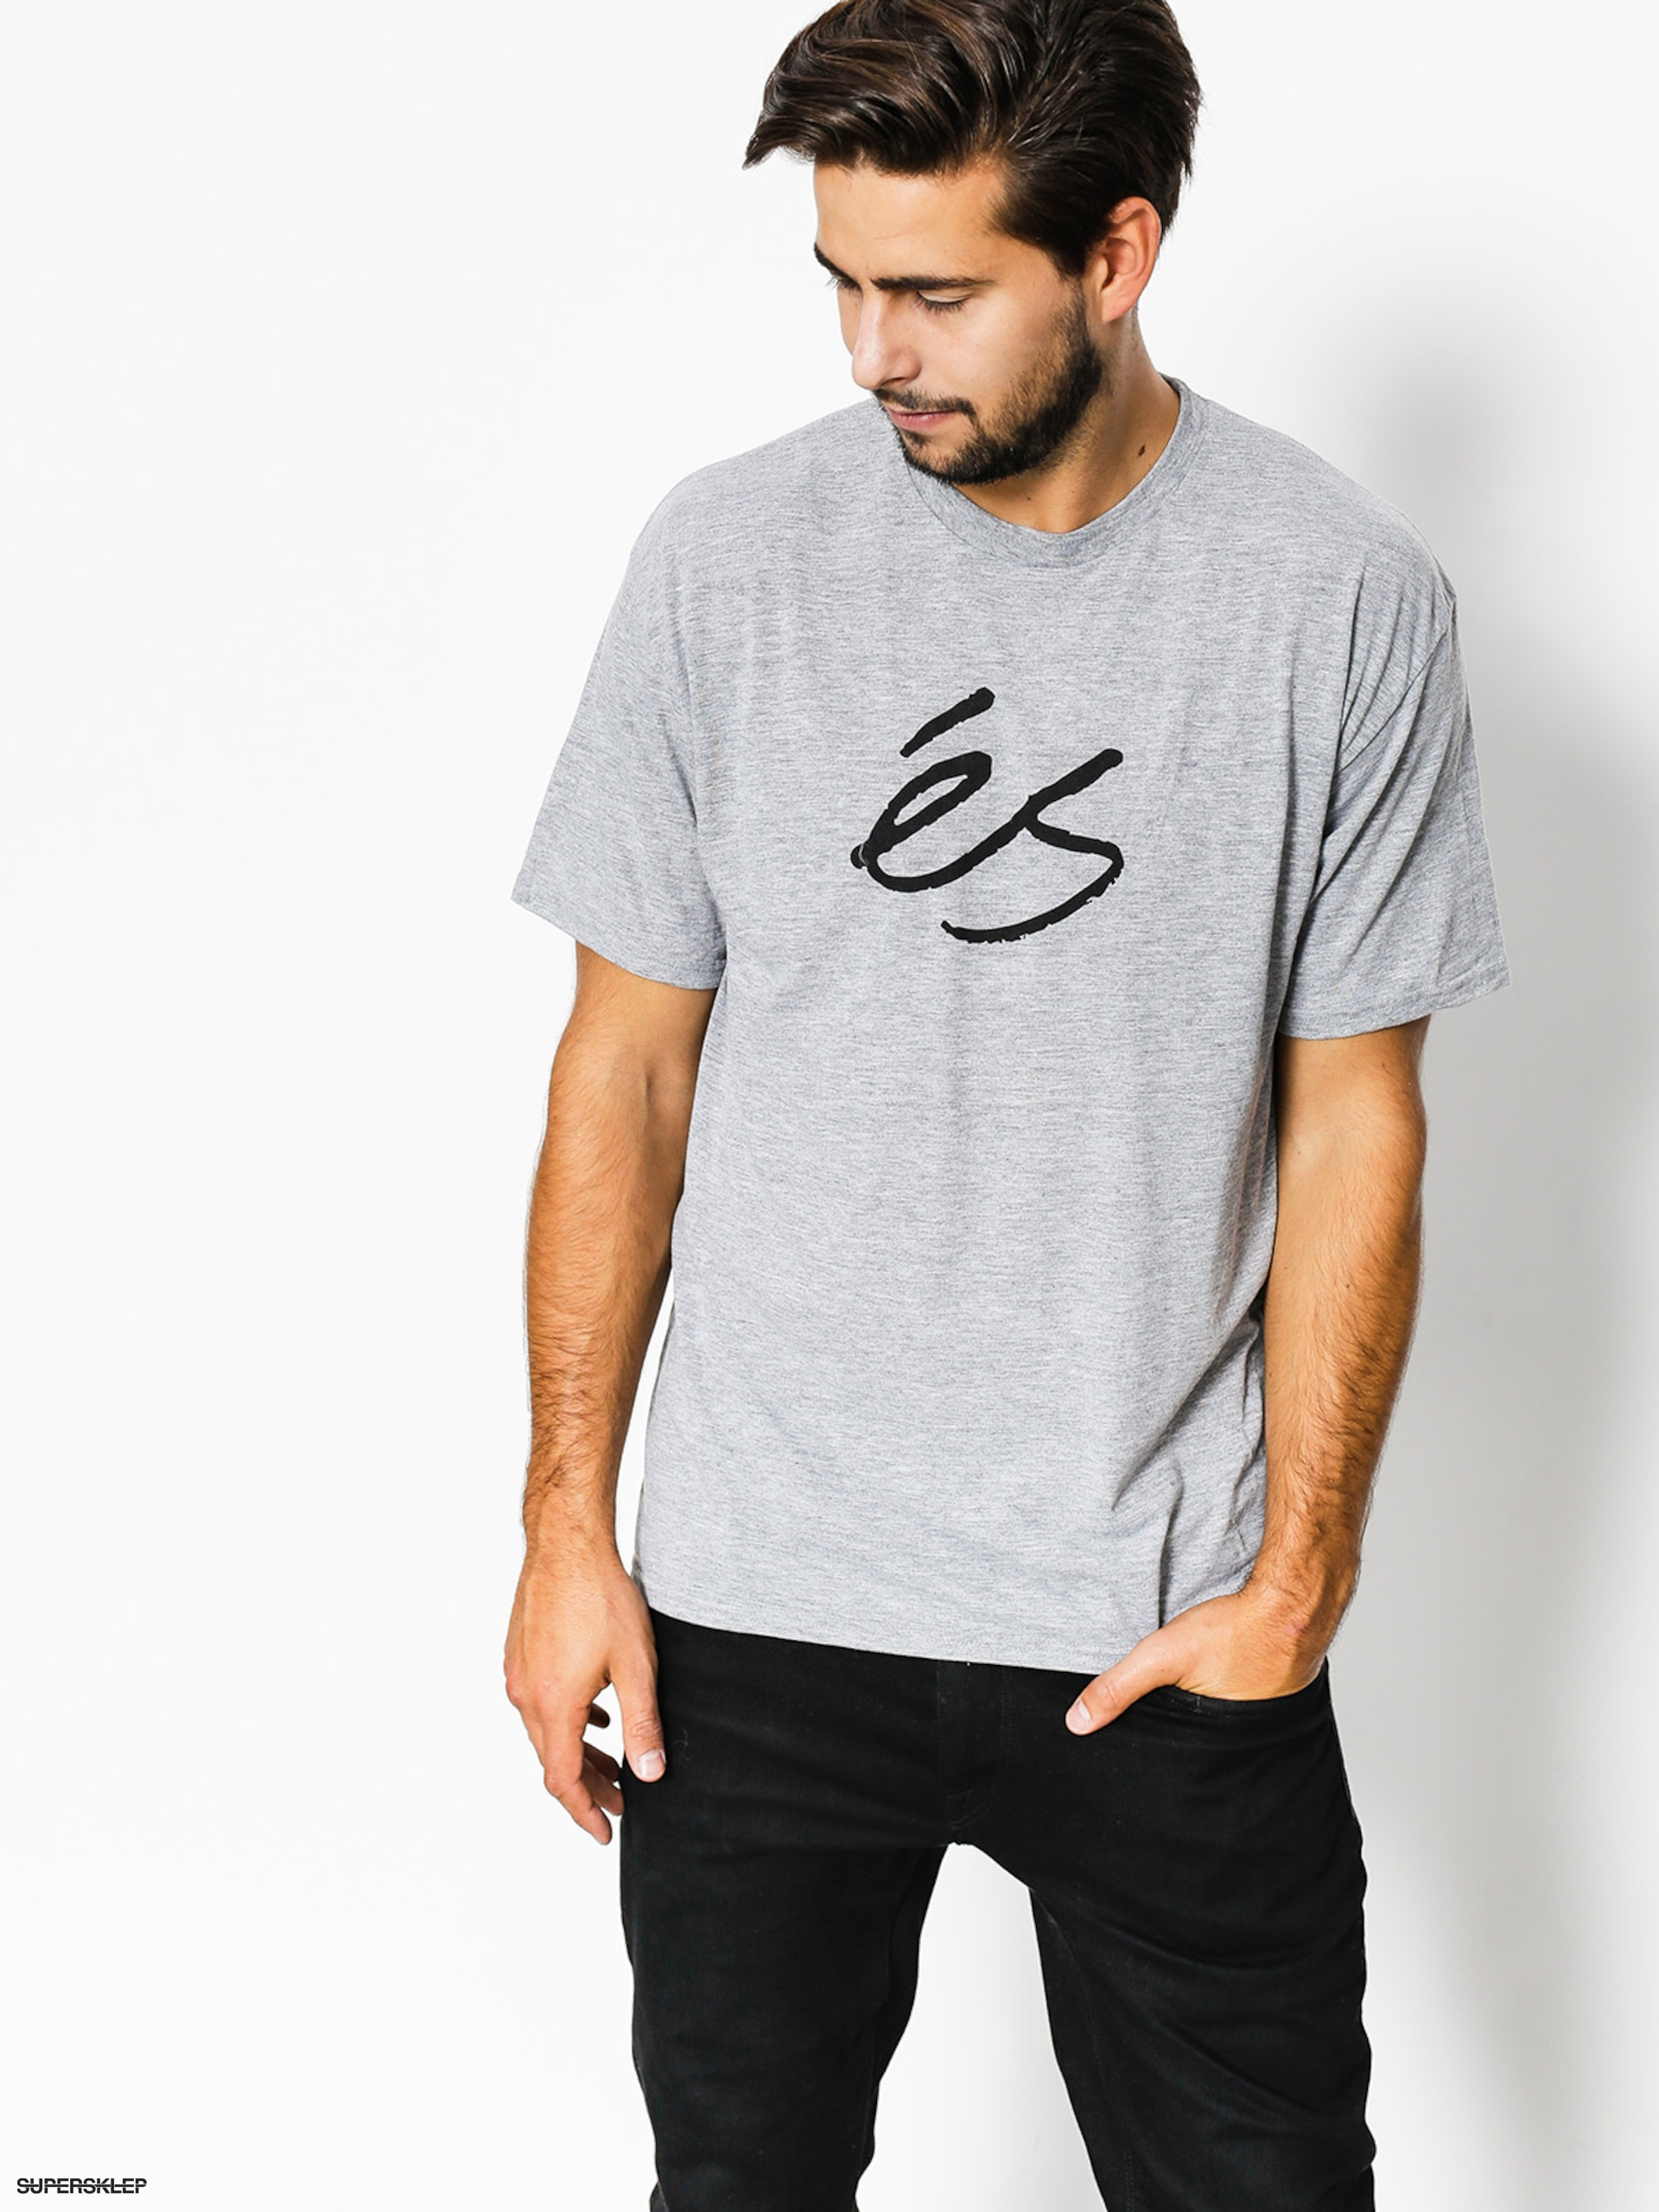 T-shirt Es Mid Script Tech (grey/heather)